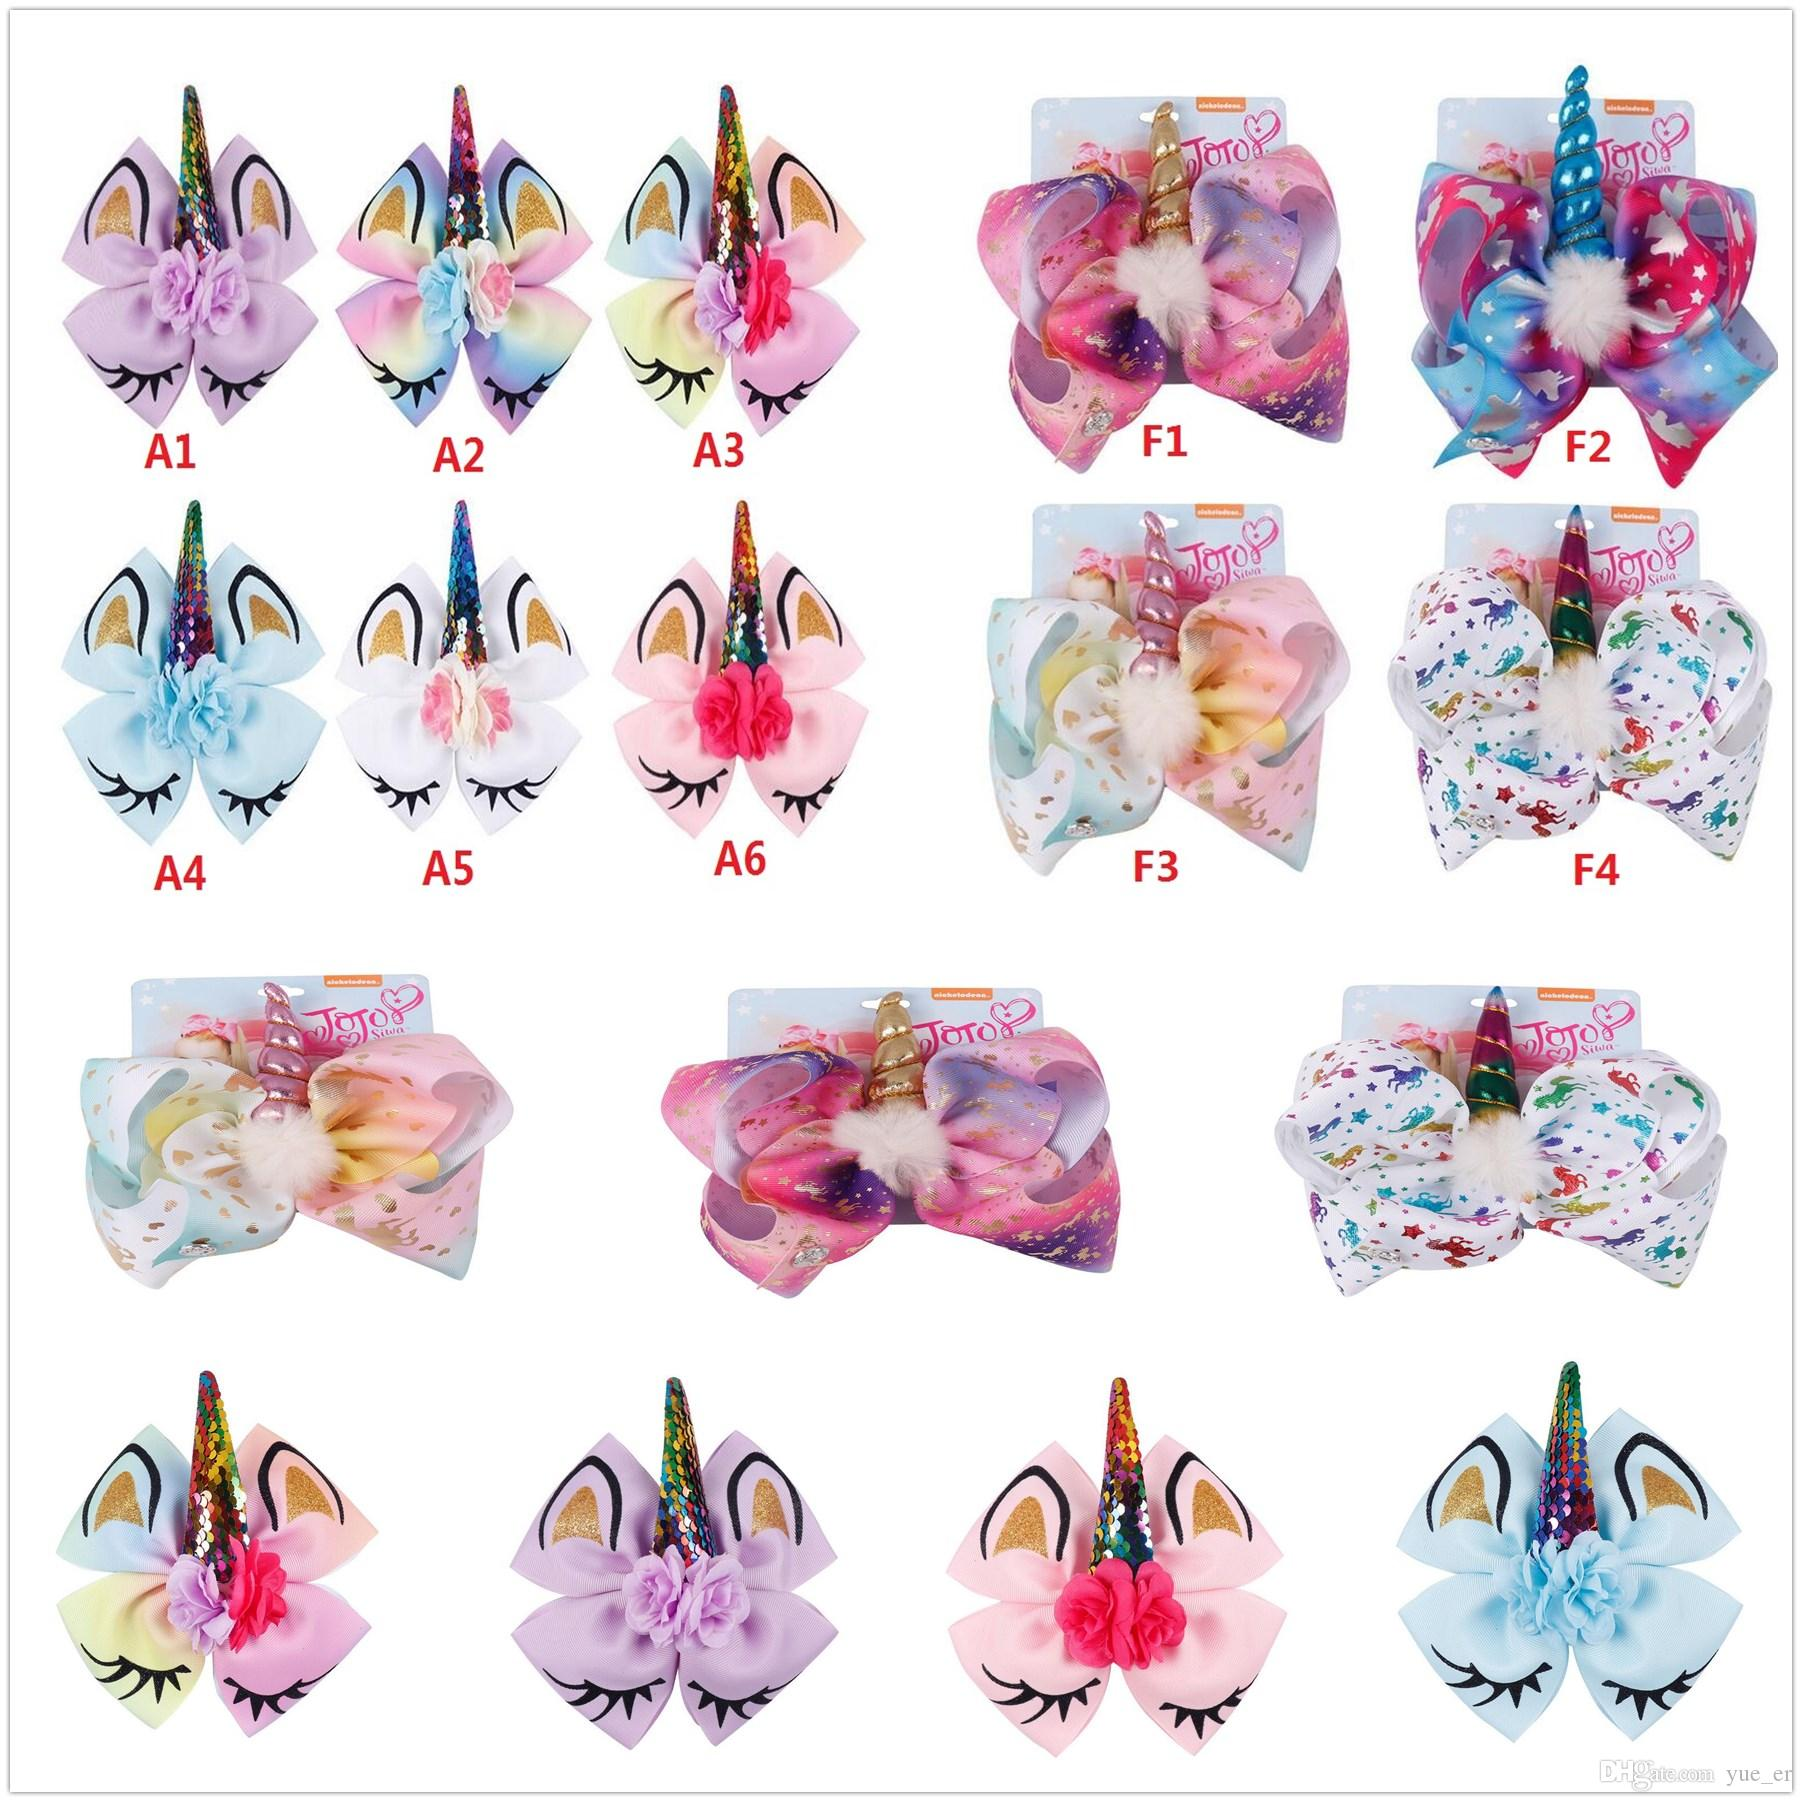 8 inch JOJO bow bowknot Unicorn baby girls Sequin hair bows Ox horn barrettes Rainbow Clippers Hair Clips JOJO Hair Accessory Fashion